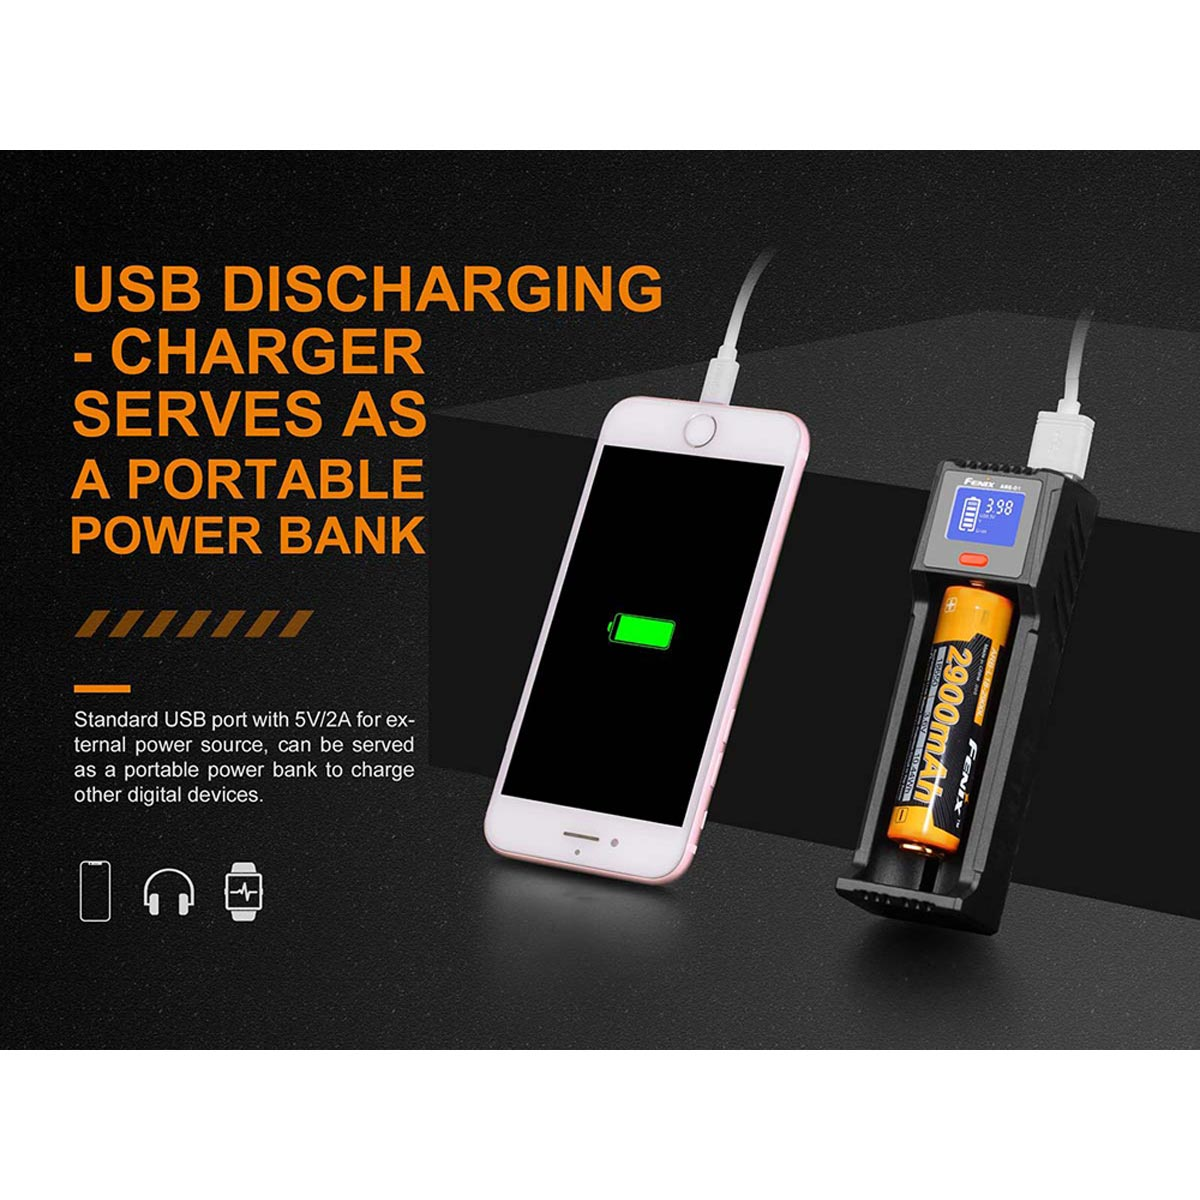 Fenix ARE-D1 Single-Slot Battery Charger for Li-ion / Ni-MH / Ni-Cd Rechargeable Batteries & USB Charging